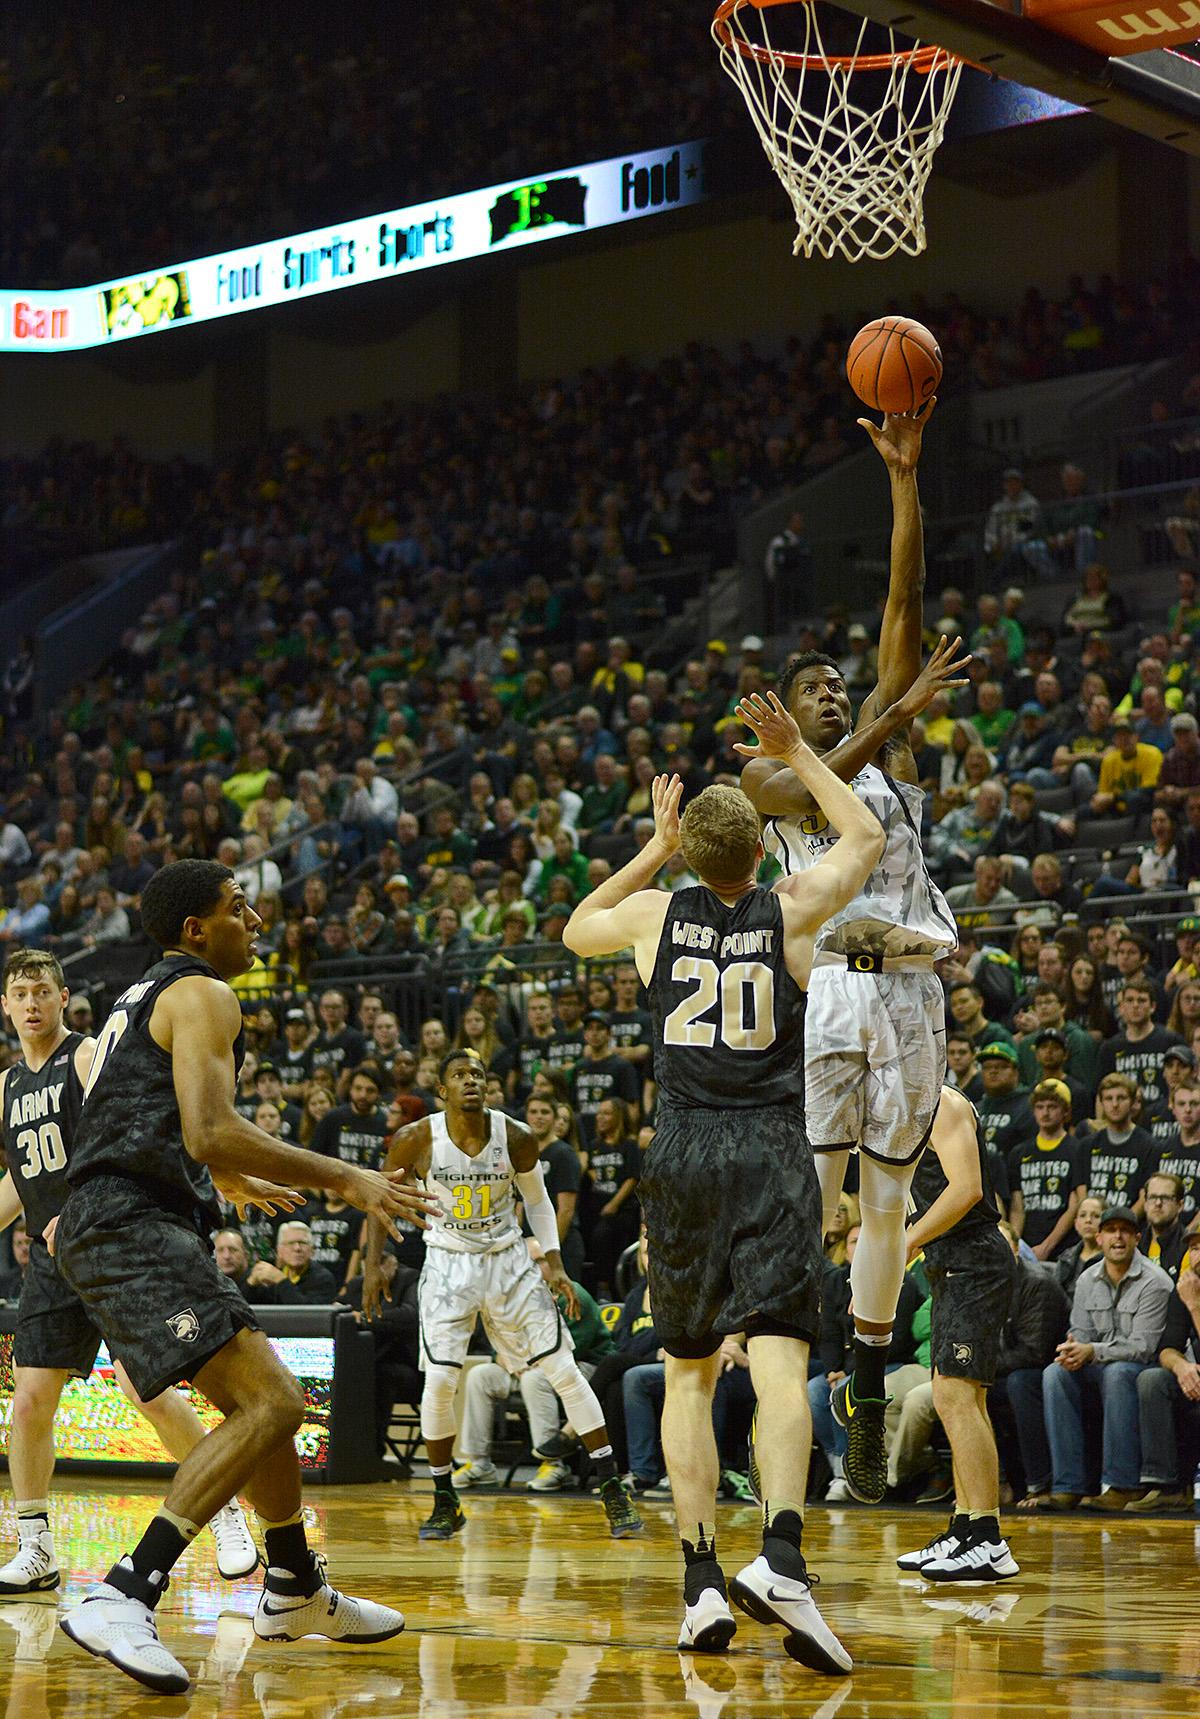 Ducks' Kavell Bigby-Williams (#35) rises above Army's Mac Hoffman (#20) to get the shot off for two points. In front of a sold out crowd, Oregon defeated Army 91-77 on opening night. Photo by Jacob Smith, Oregon News Lab